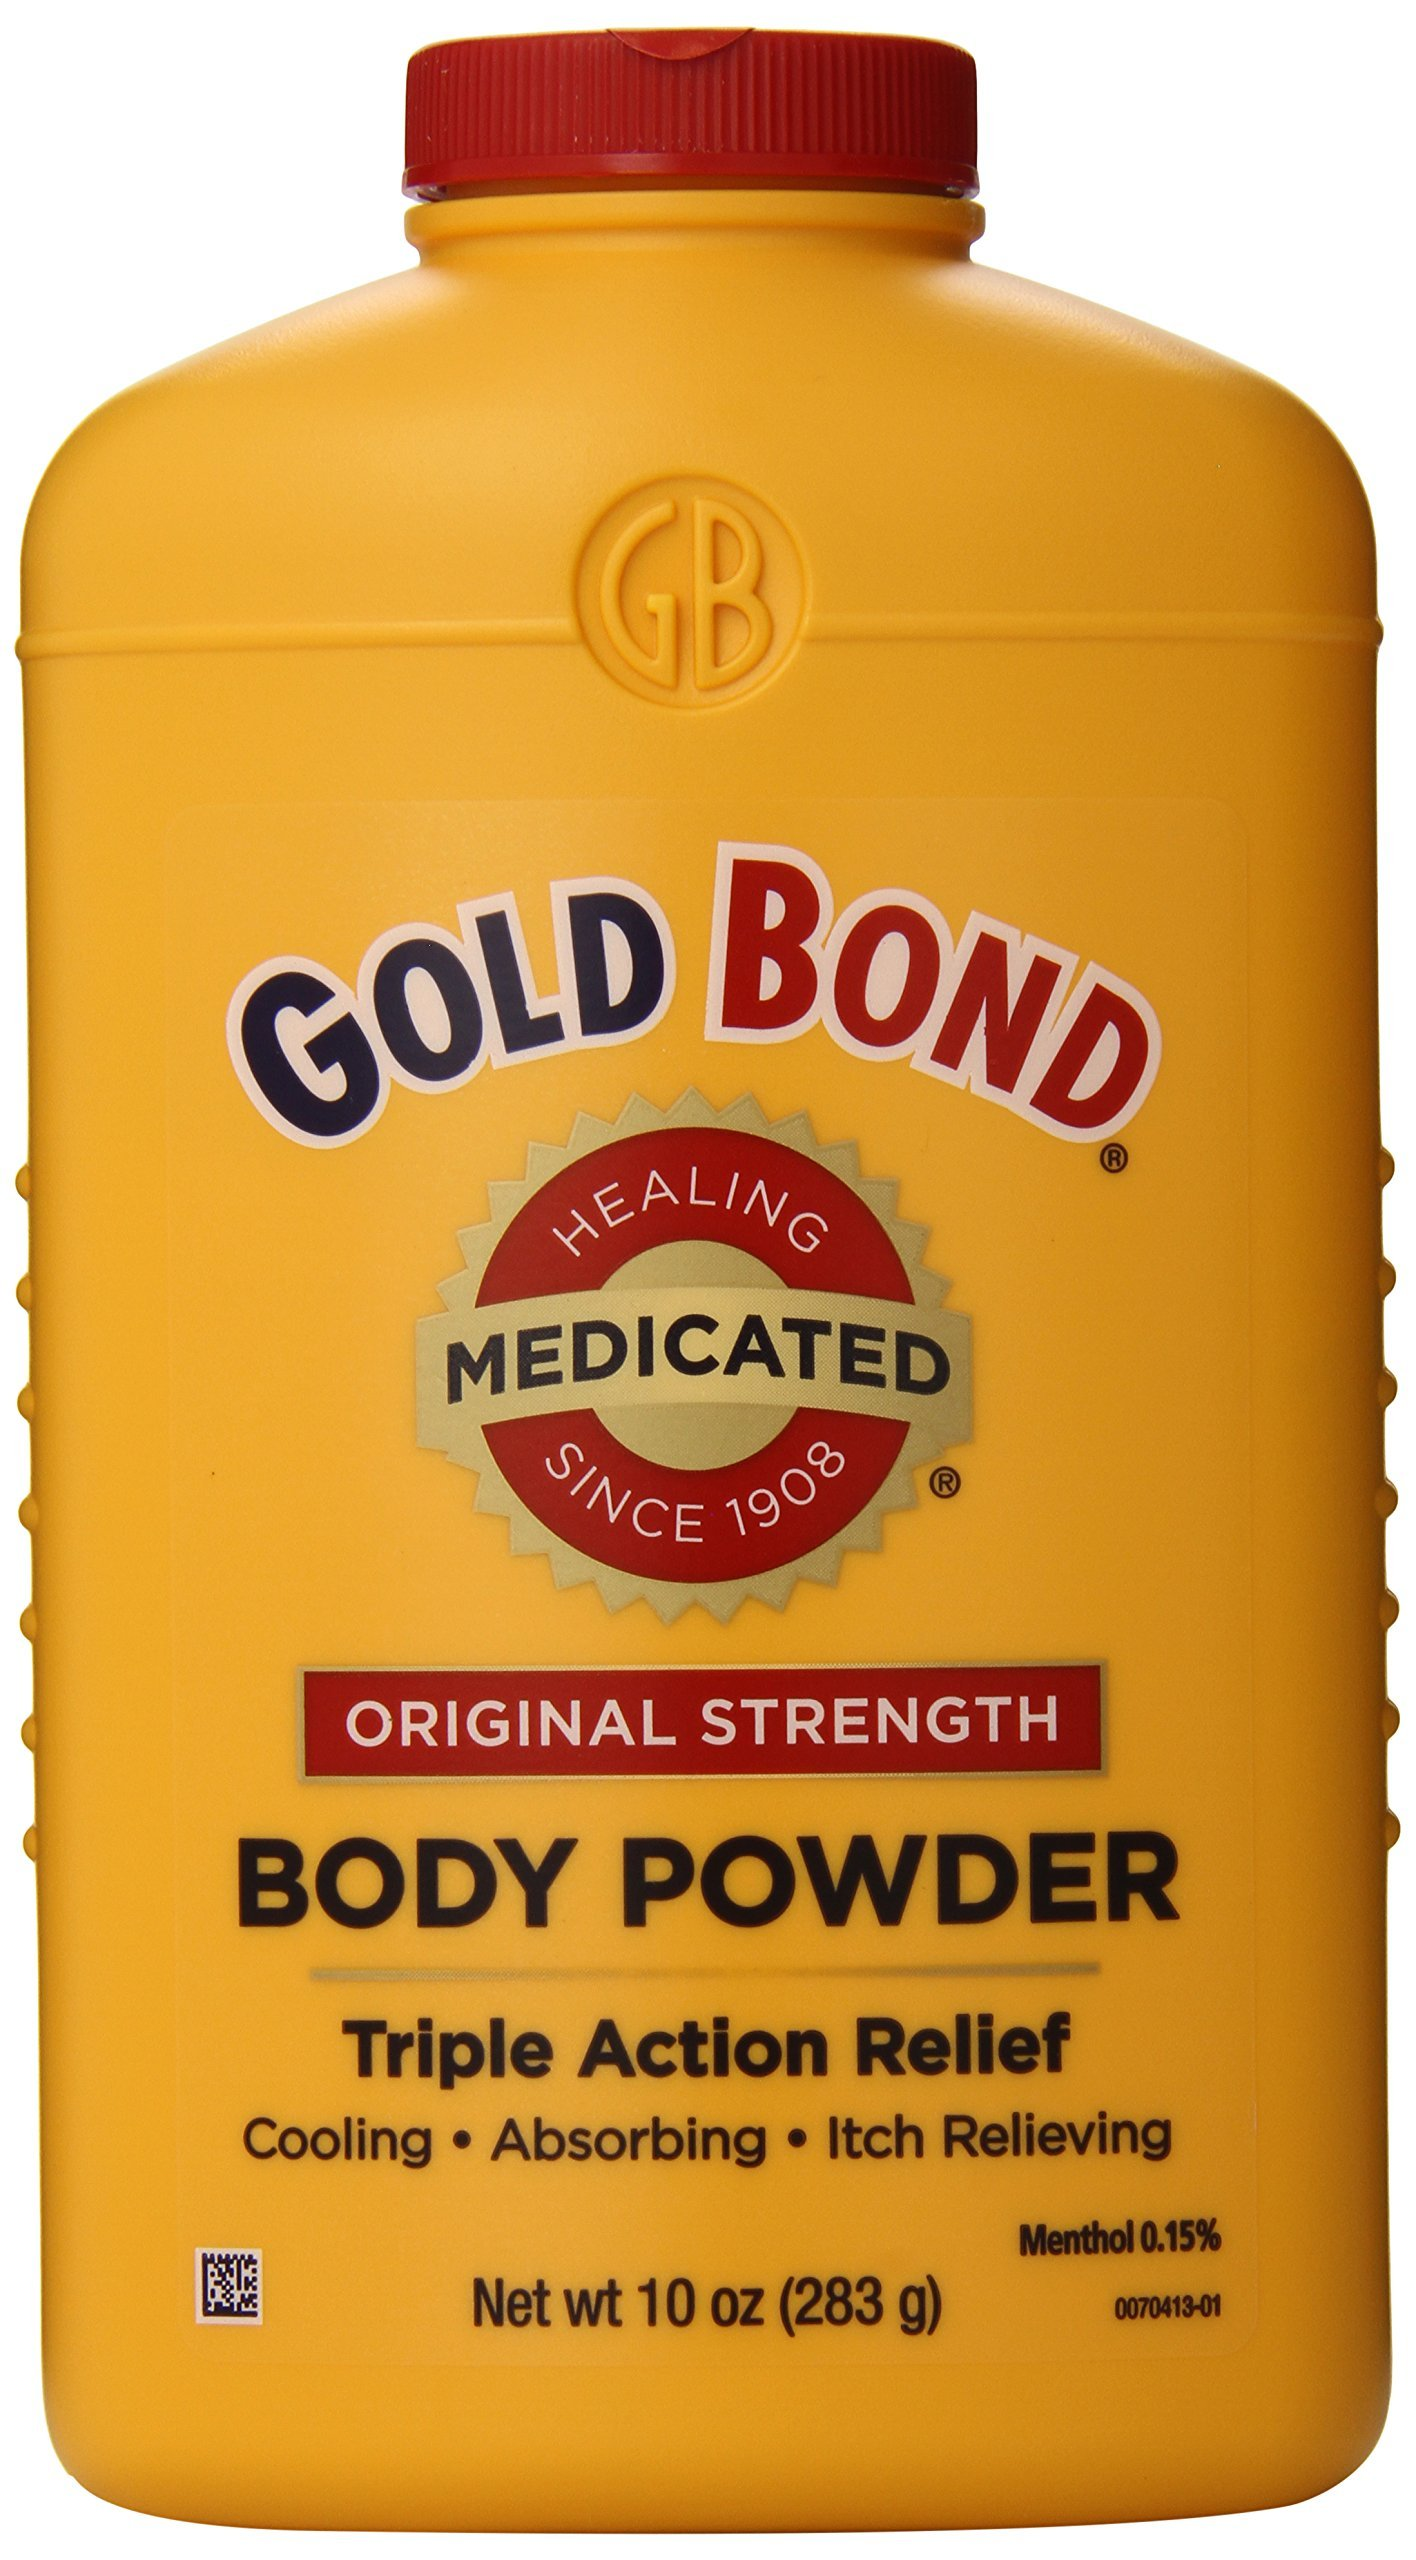 Gold Bond Medicated Powder, 10 Ounce Containers (Pack of 3), Helps Soothe and Relieve Skin Irritaitons and Itching, Cools, Absorbs Moisture, Deodorizes by Gold Bond (Image #1)